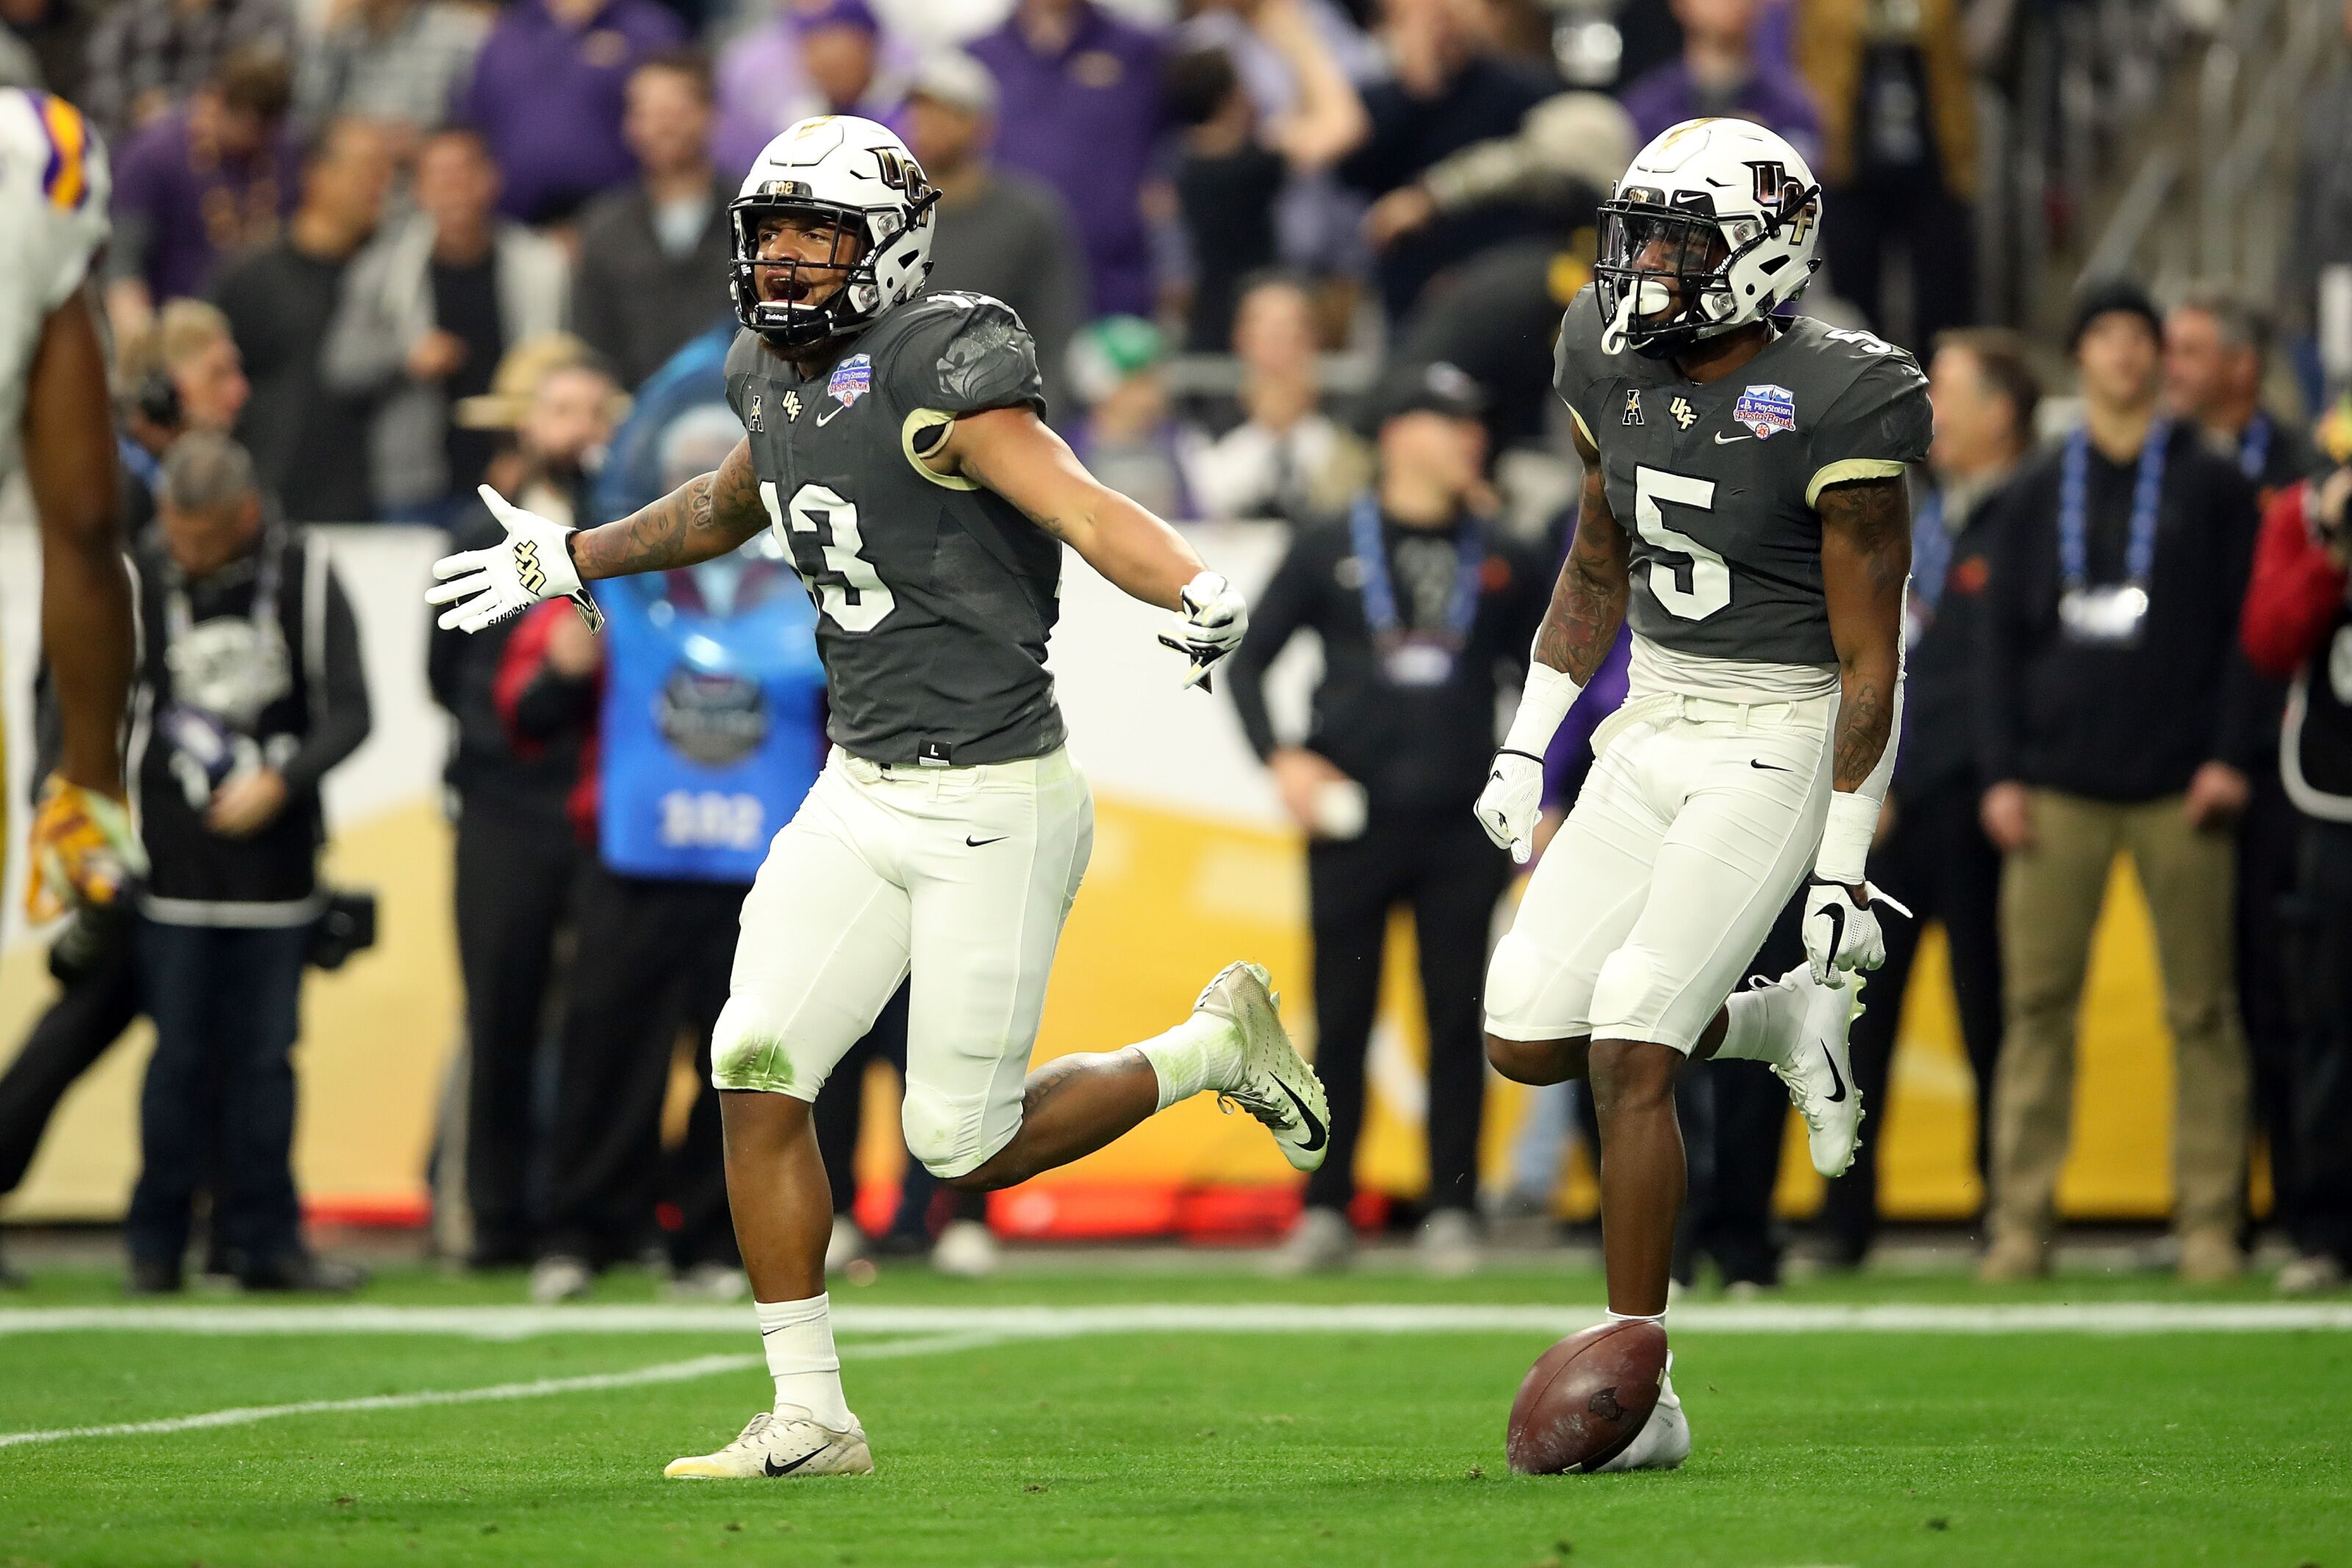 UCF football gets much-needed tune-up game vs. Florida A&M in Week 1